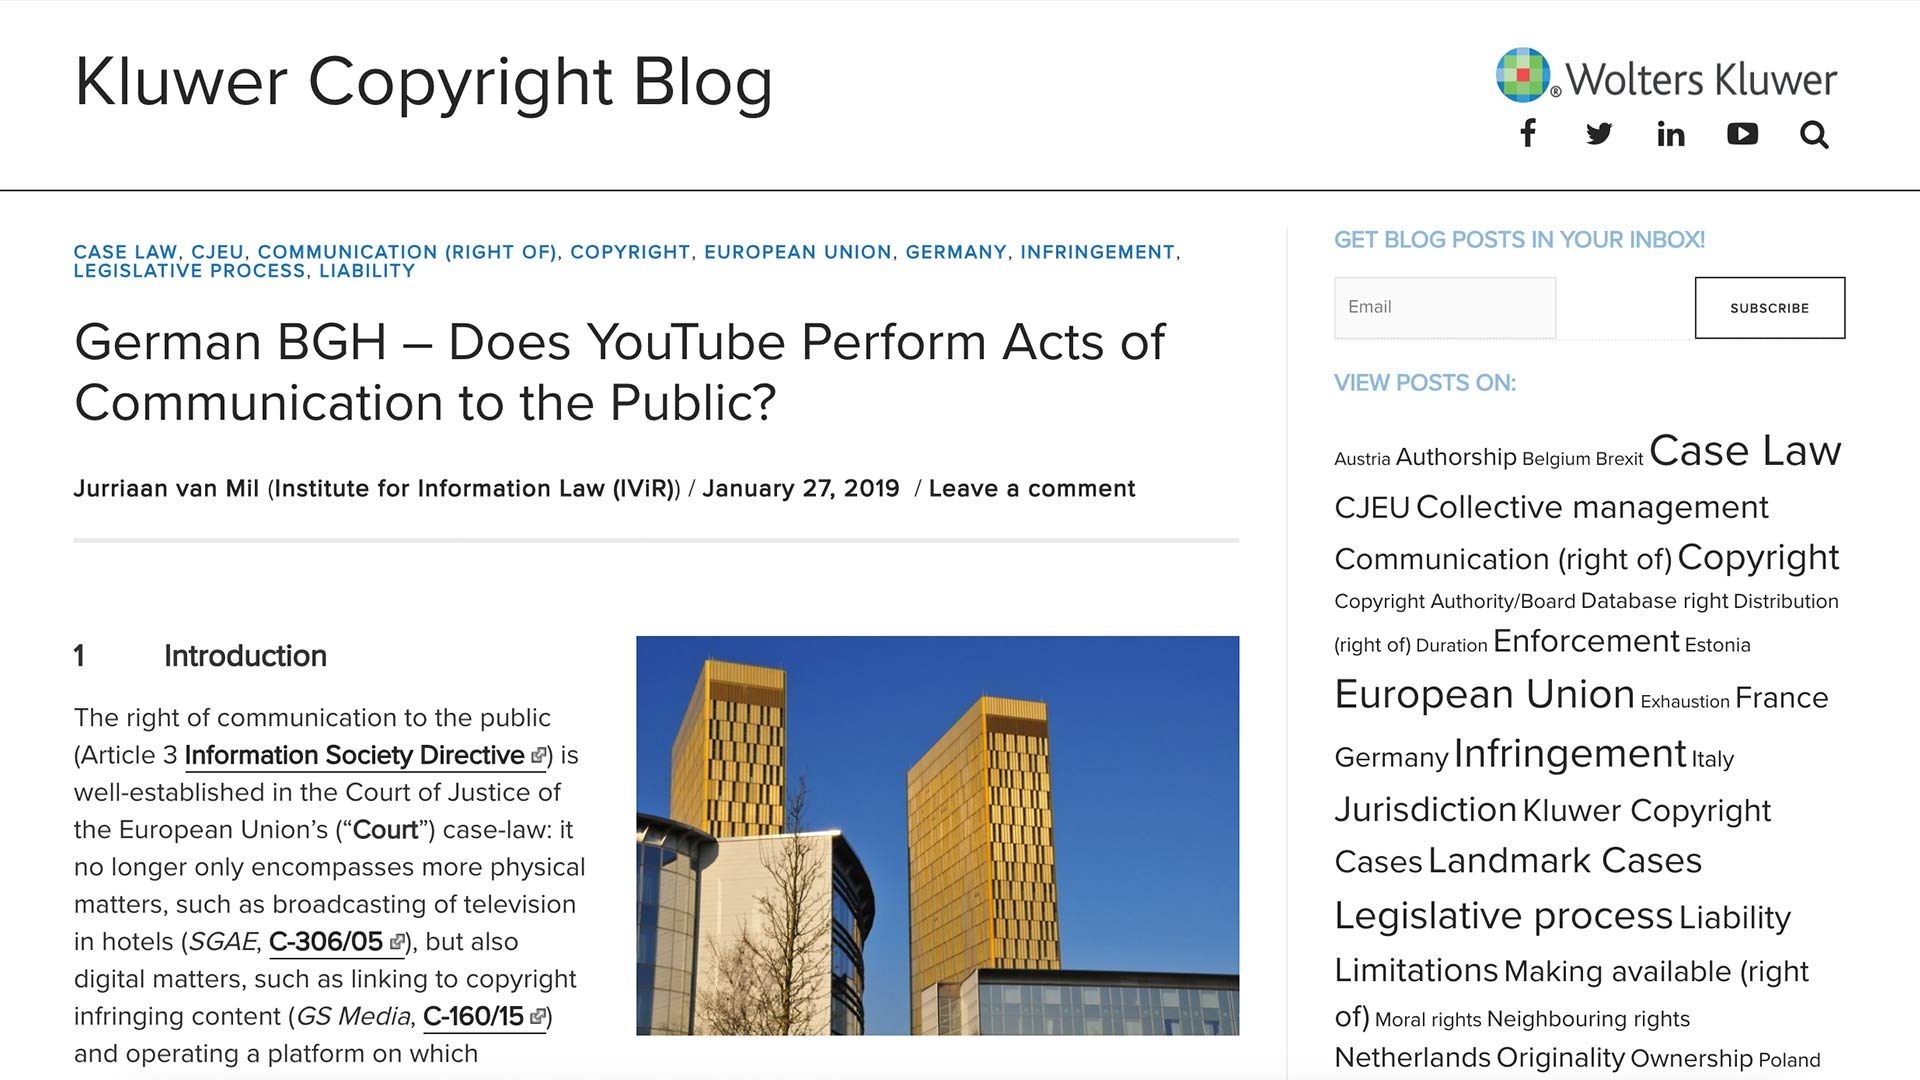 Fairness Rocks News German BGH – Does YouTube Perform Acts of Communication to the Public?